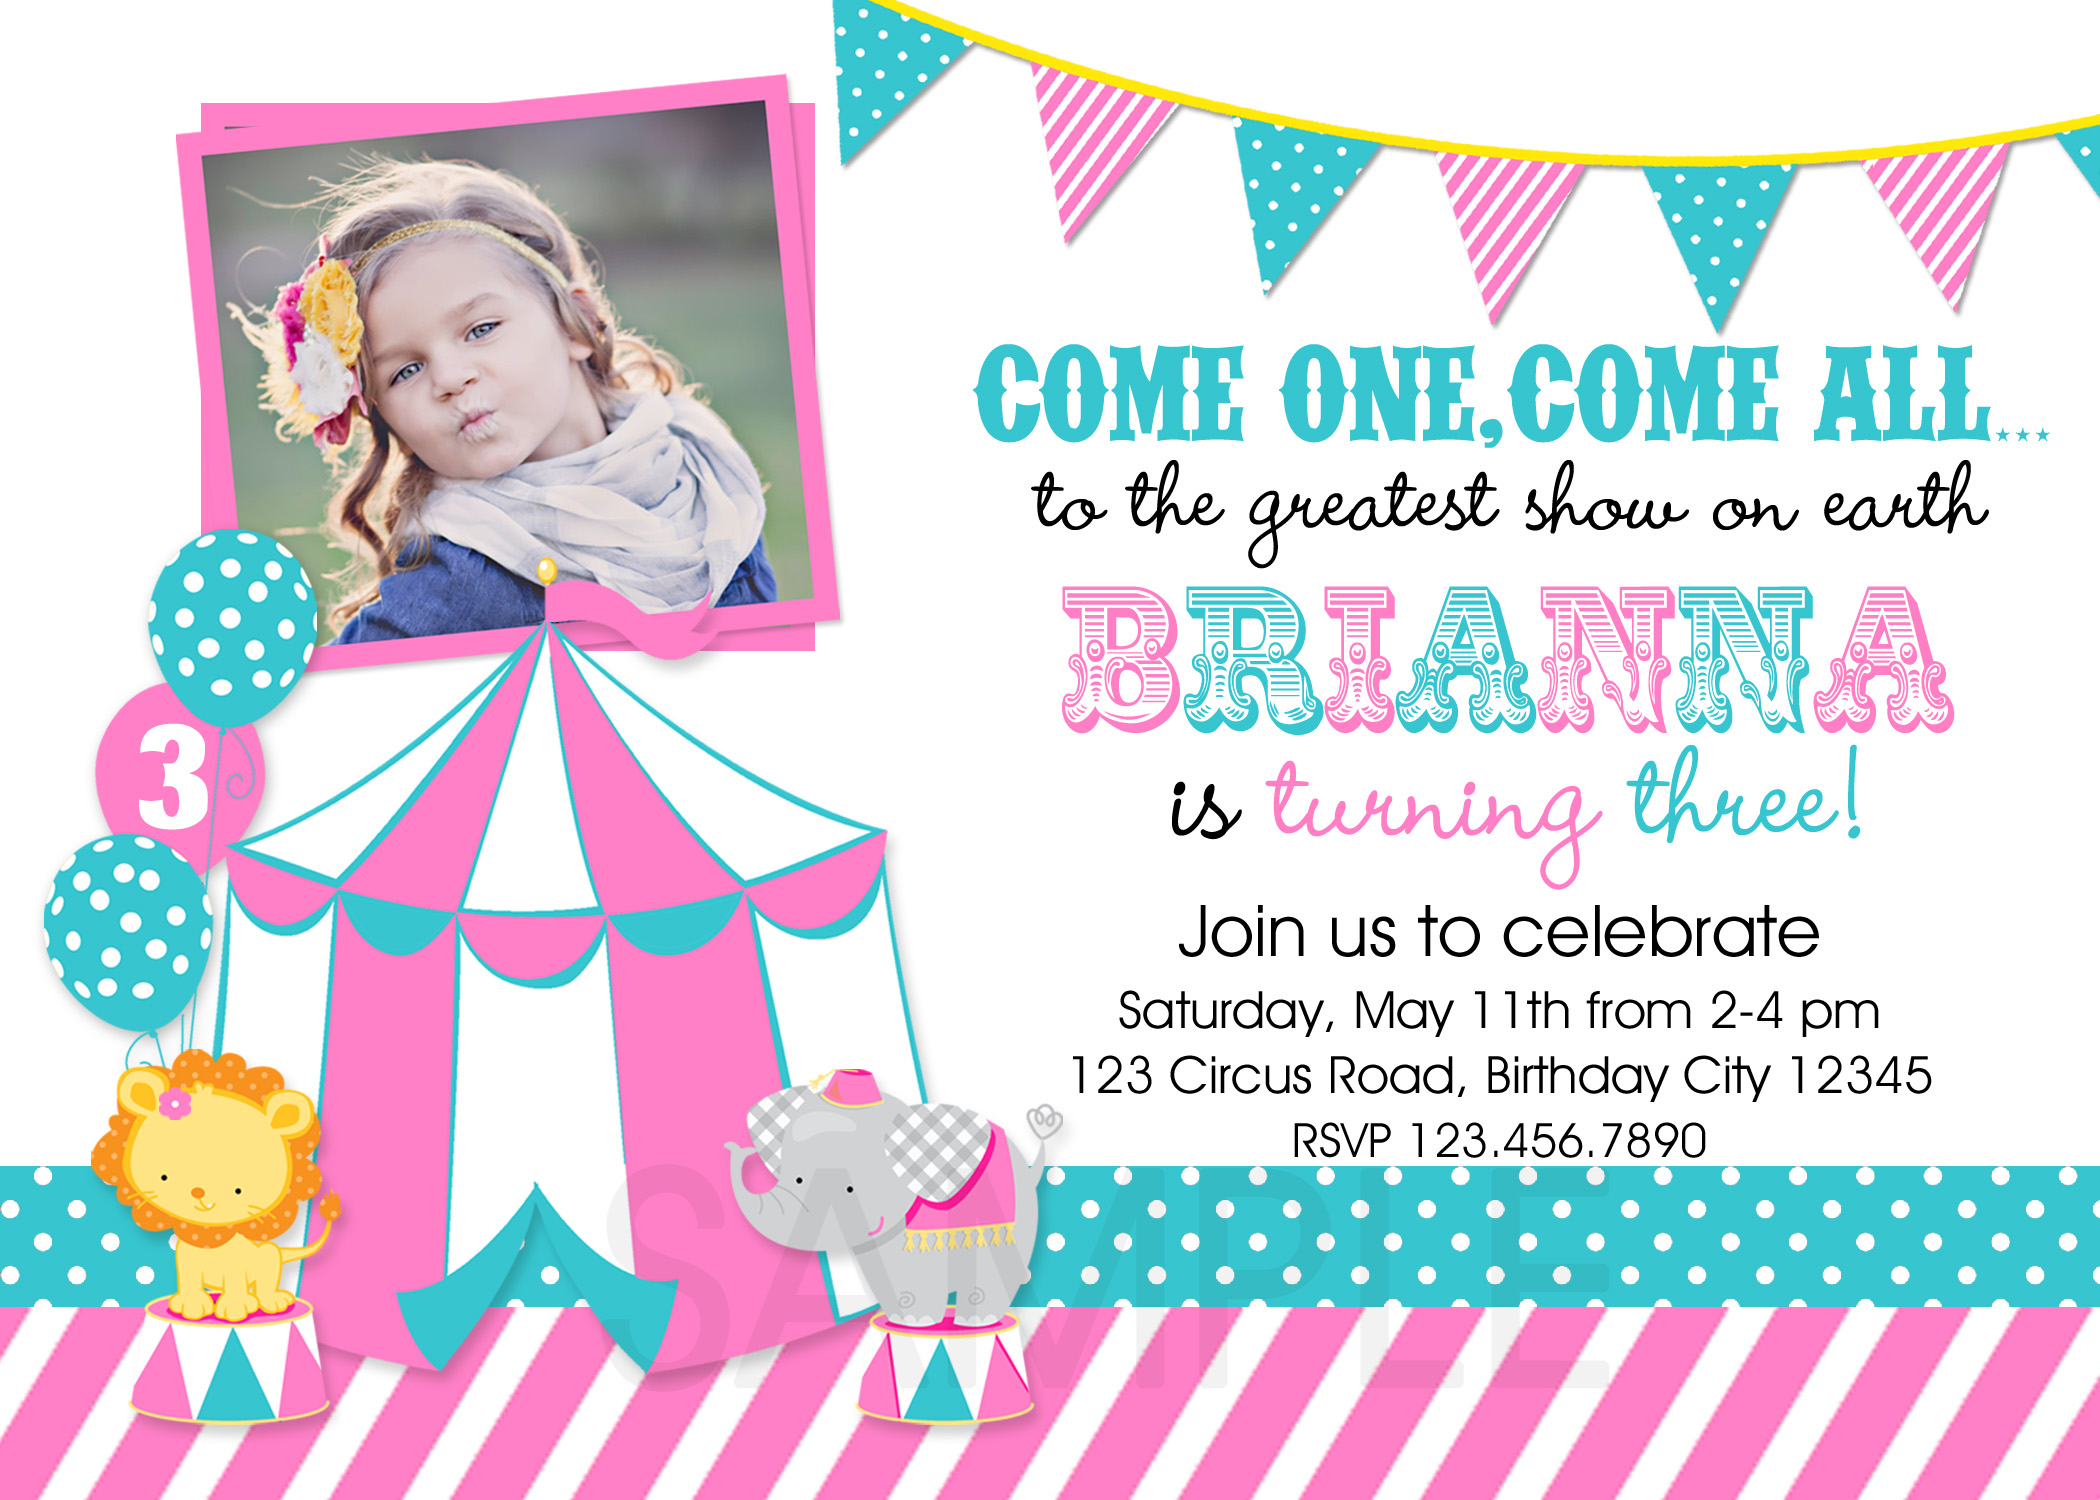 Printable Birthday Party Invitations Circus Carnival Theme Invitation